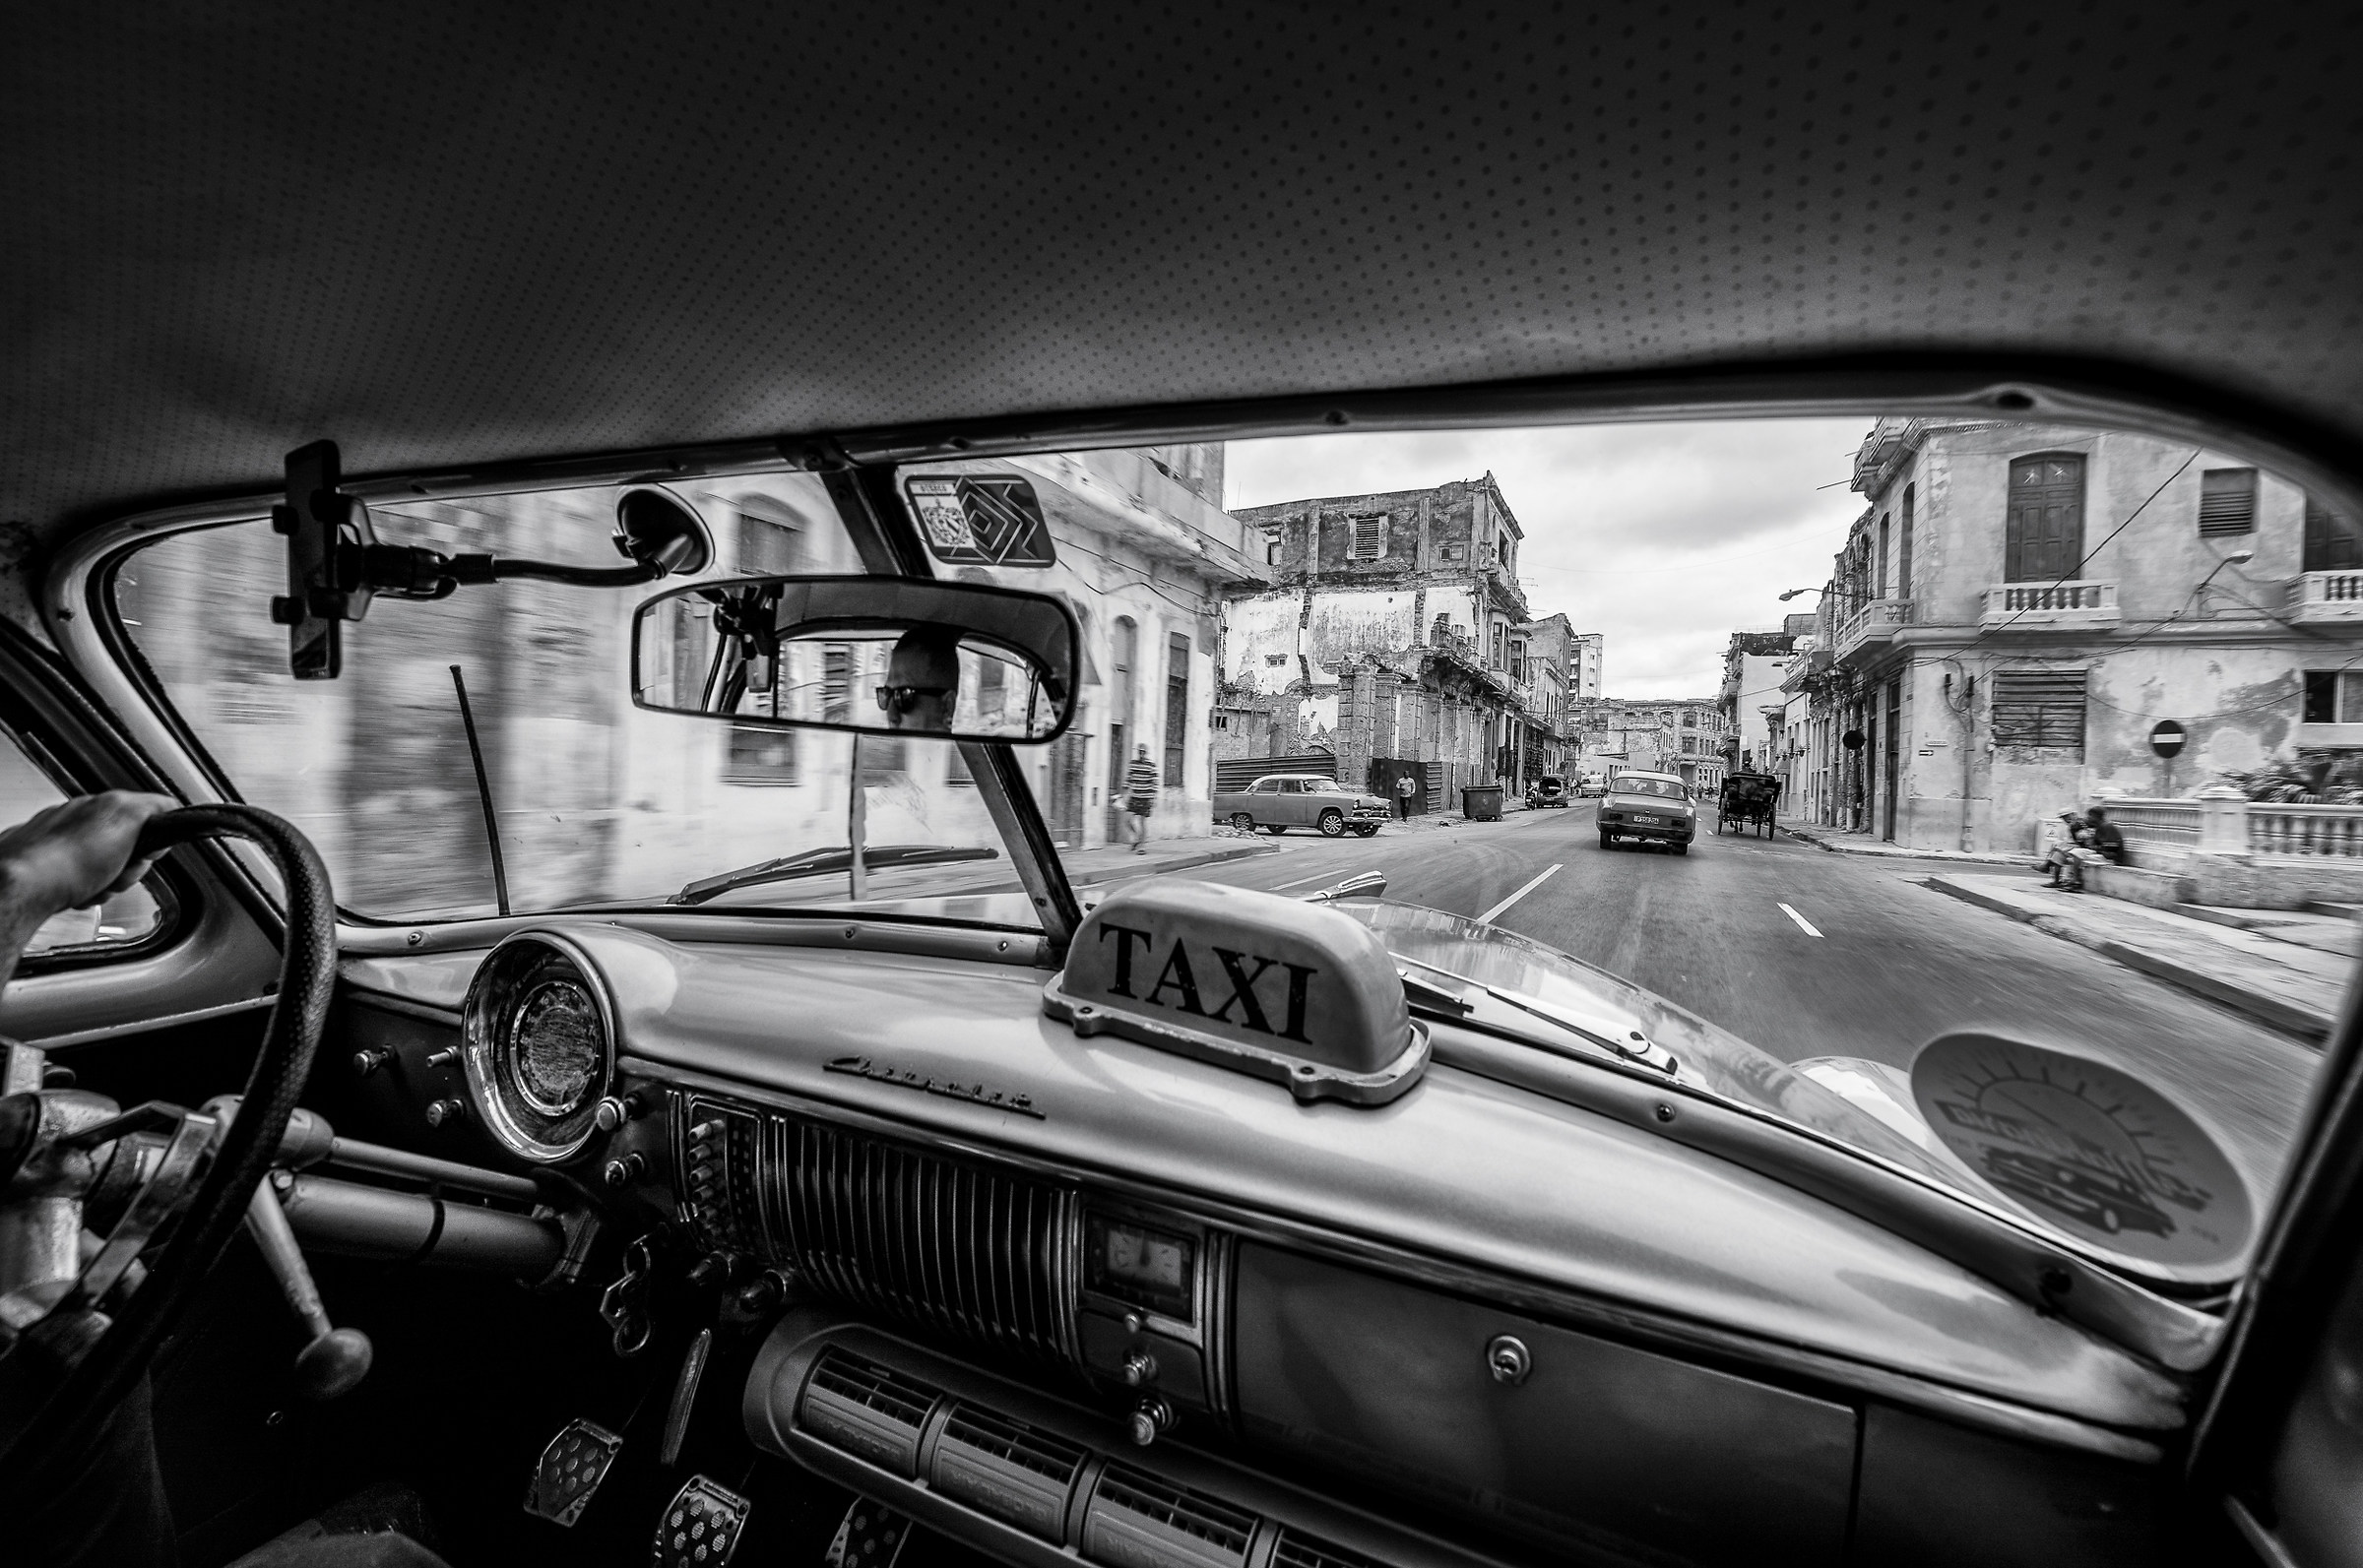 Riding the cuban streets...